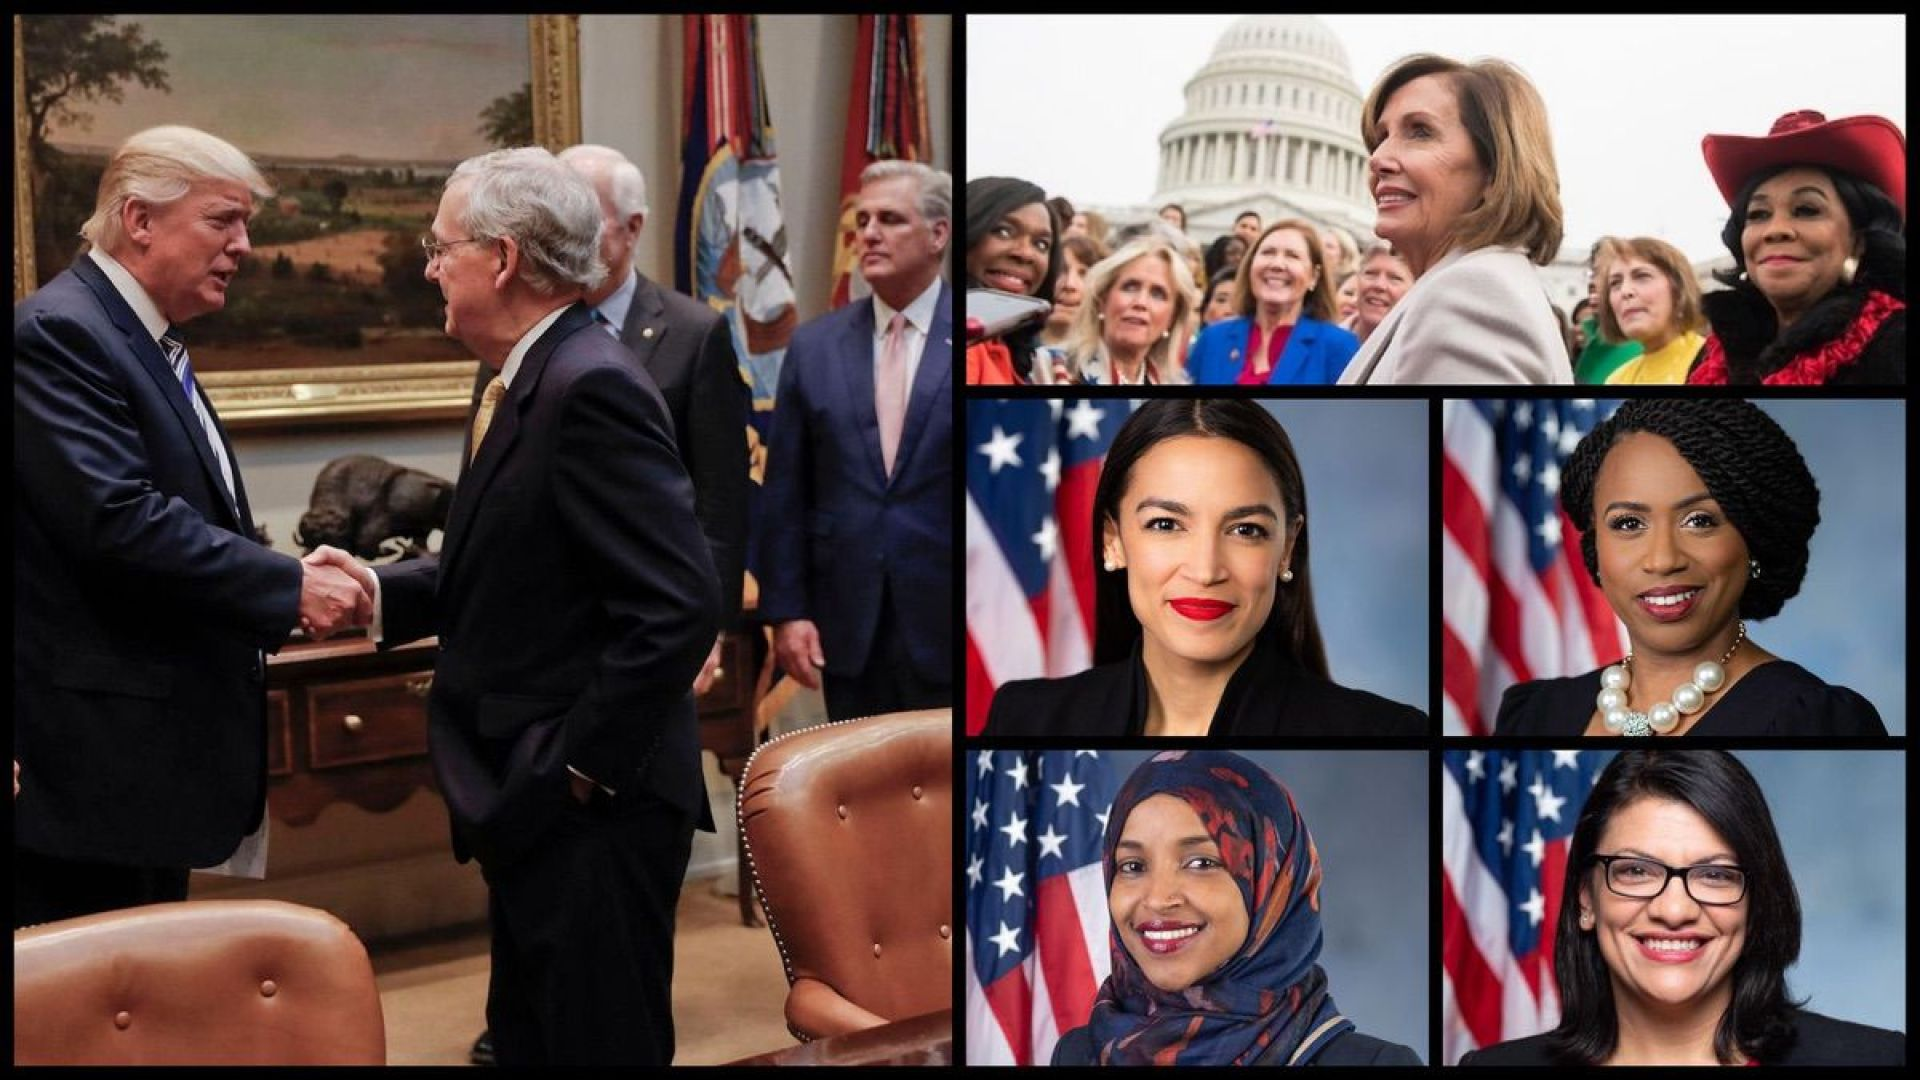 Left: President Trump, Senate Majority Leader Mitch McConnell, House Minority Leader Kevin McCarthy (AP). Left: Speaker of the House Nancy Pelosi, House Democrats, and Representatives Alexandria Ocasio-Cortez (D-NY), Rashida Tlaib (D-MI), Ayanna Pressley (D-IL), and Ilhan Omar (D-MN).